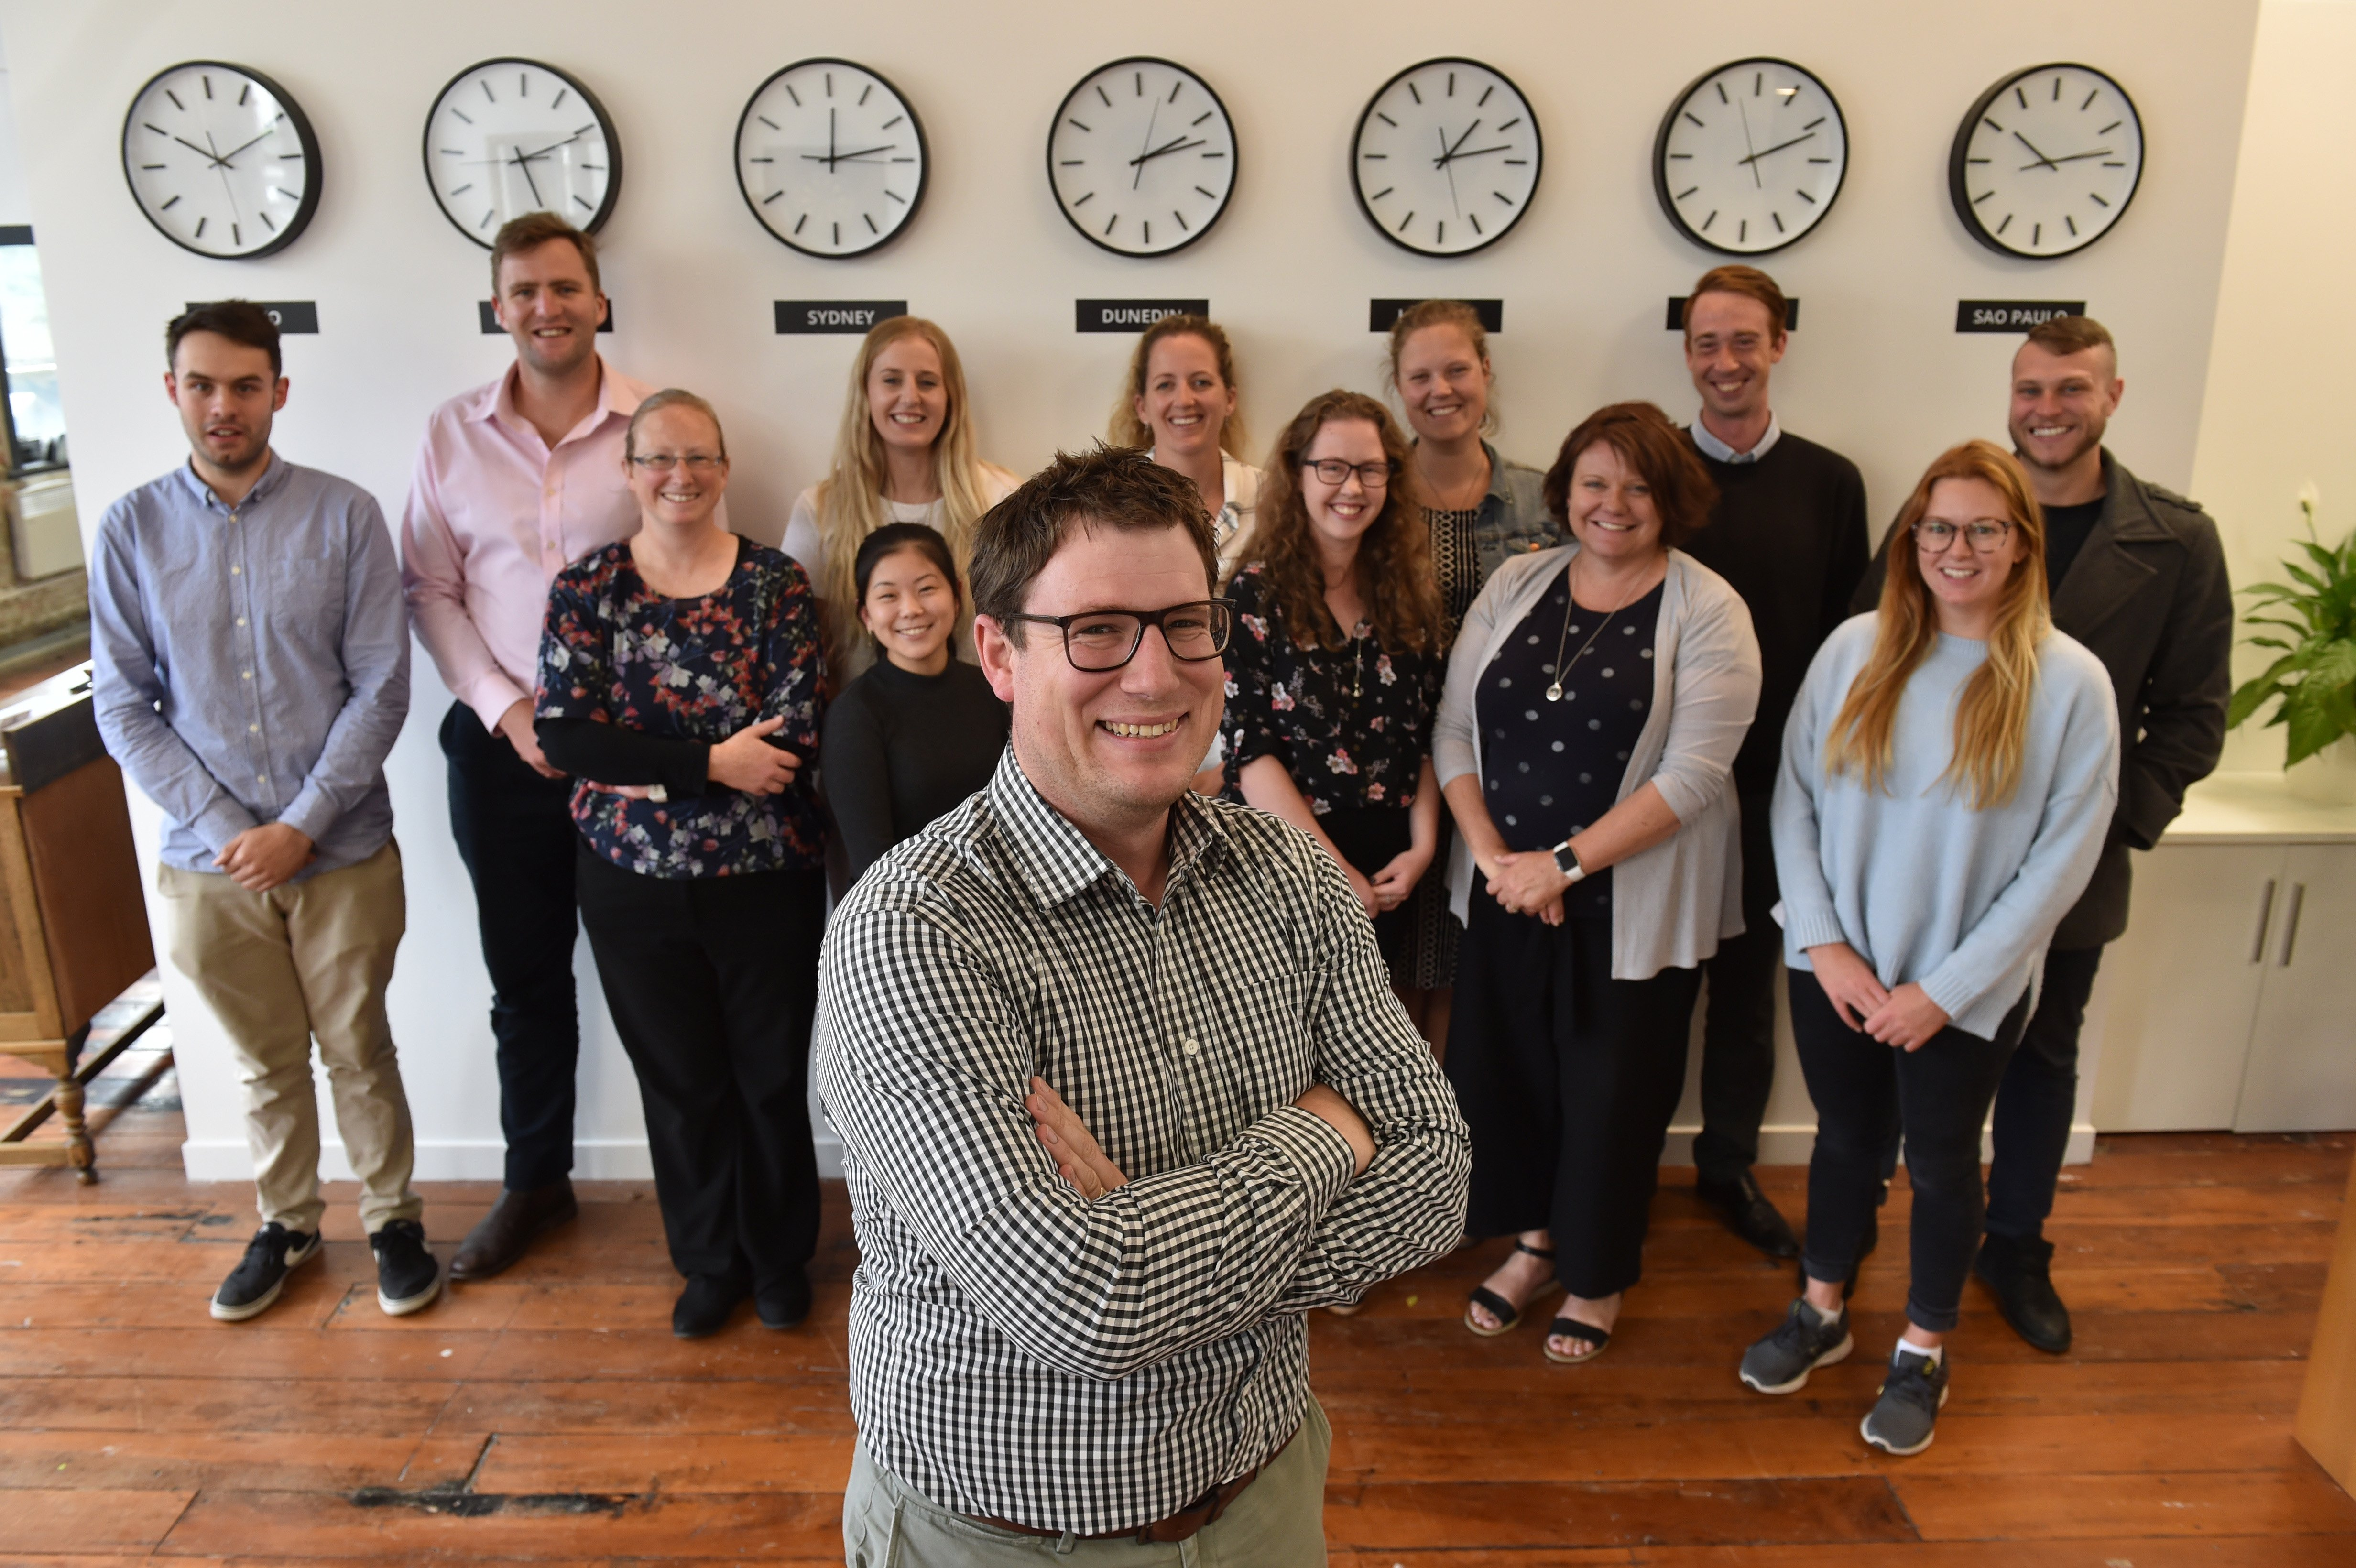 Oritain Global science and operations director Dr Sam Lind with Oritain team members (from left, back row) Cullen Shand, Stew Whitehead, Ella Wilkins, Lucinda Garside, Devonia Kruimer, Connor McSpadden and Josh Wakefield, (front row) Holiday Wilson, Kaho